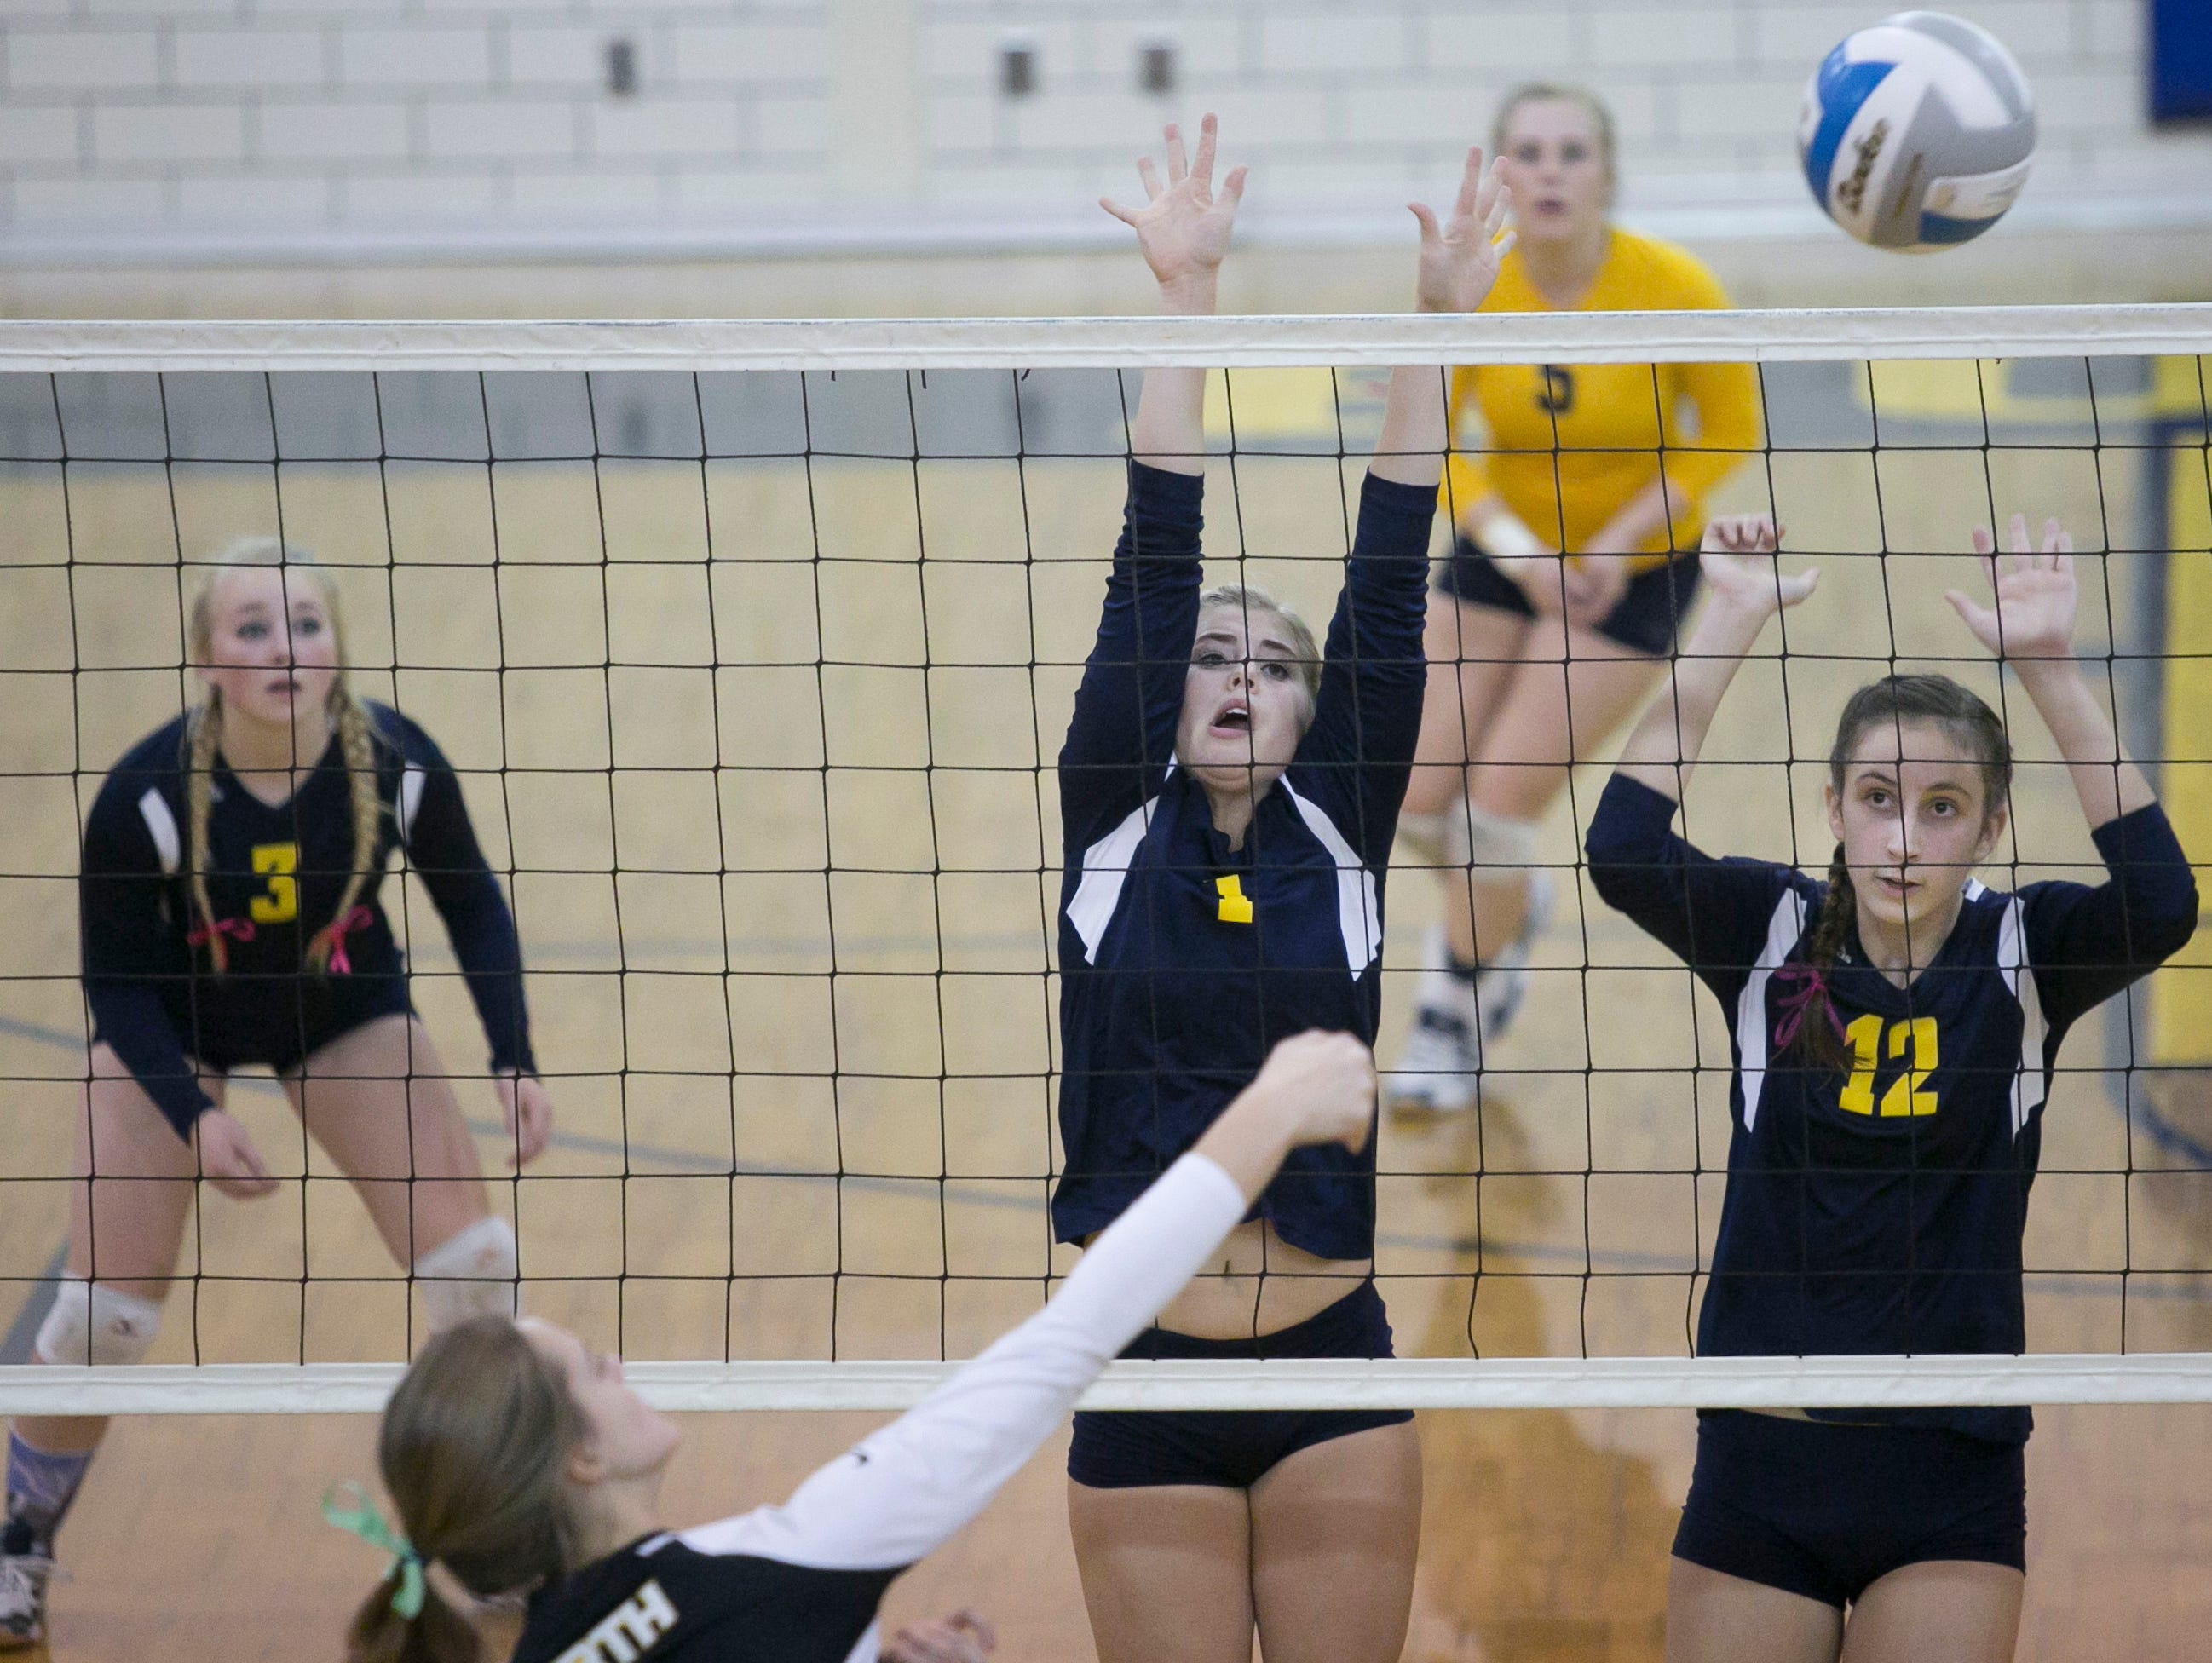 Port Huron Northern junior Brooke Bowerman and sophomore Halle Shell jump to block a spike during a volleyball game Tuesday, October 27, 2015 at Port Huron Northern High School.